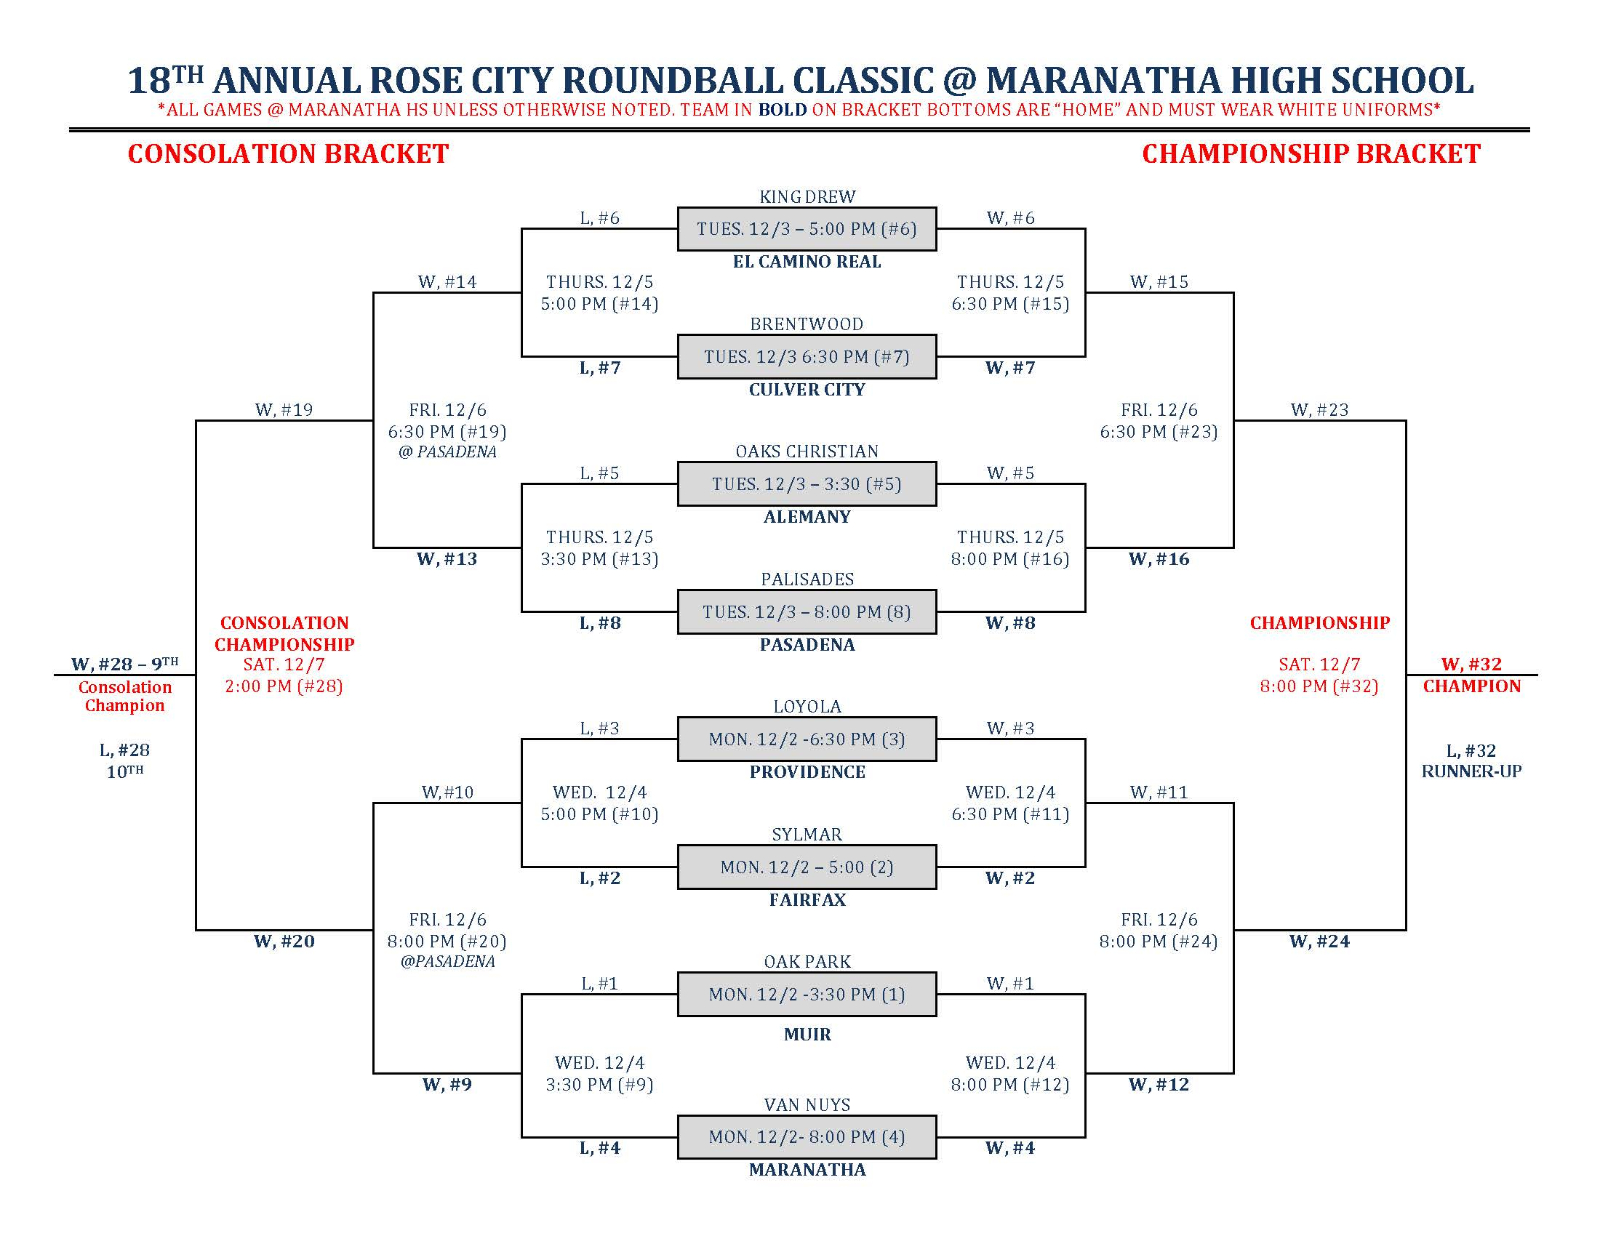 18TH  ANNUAL ROSE CITY ROUNDBALL CLASSIC